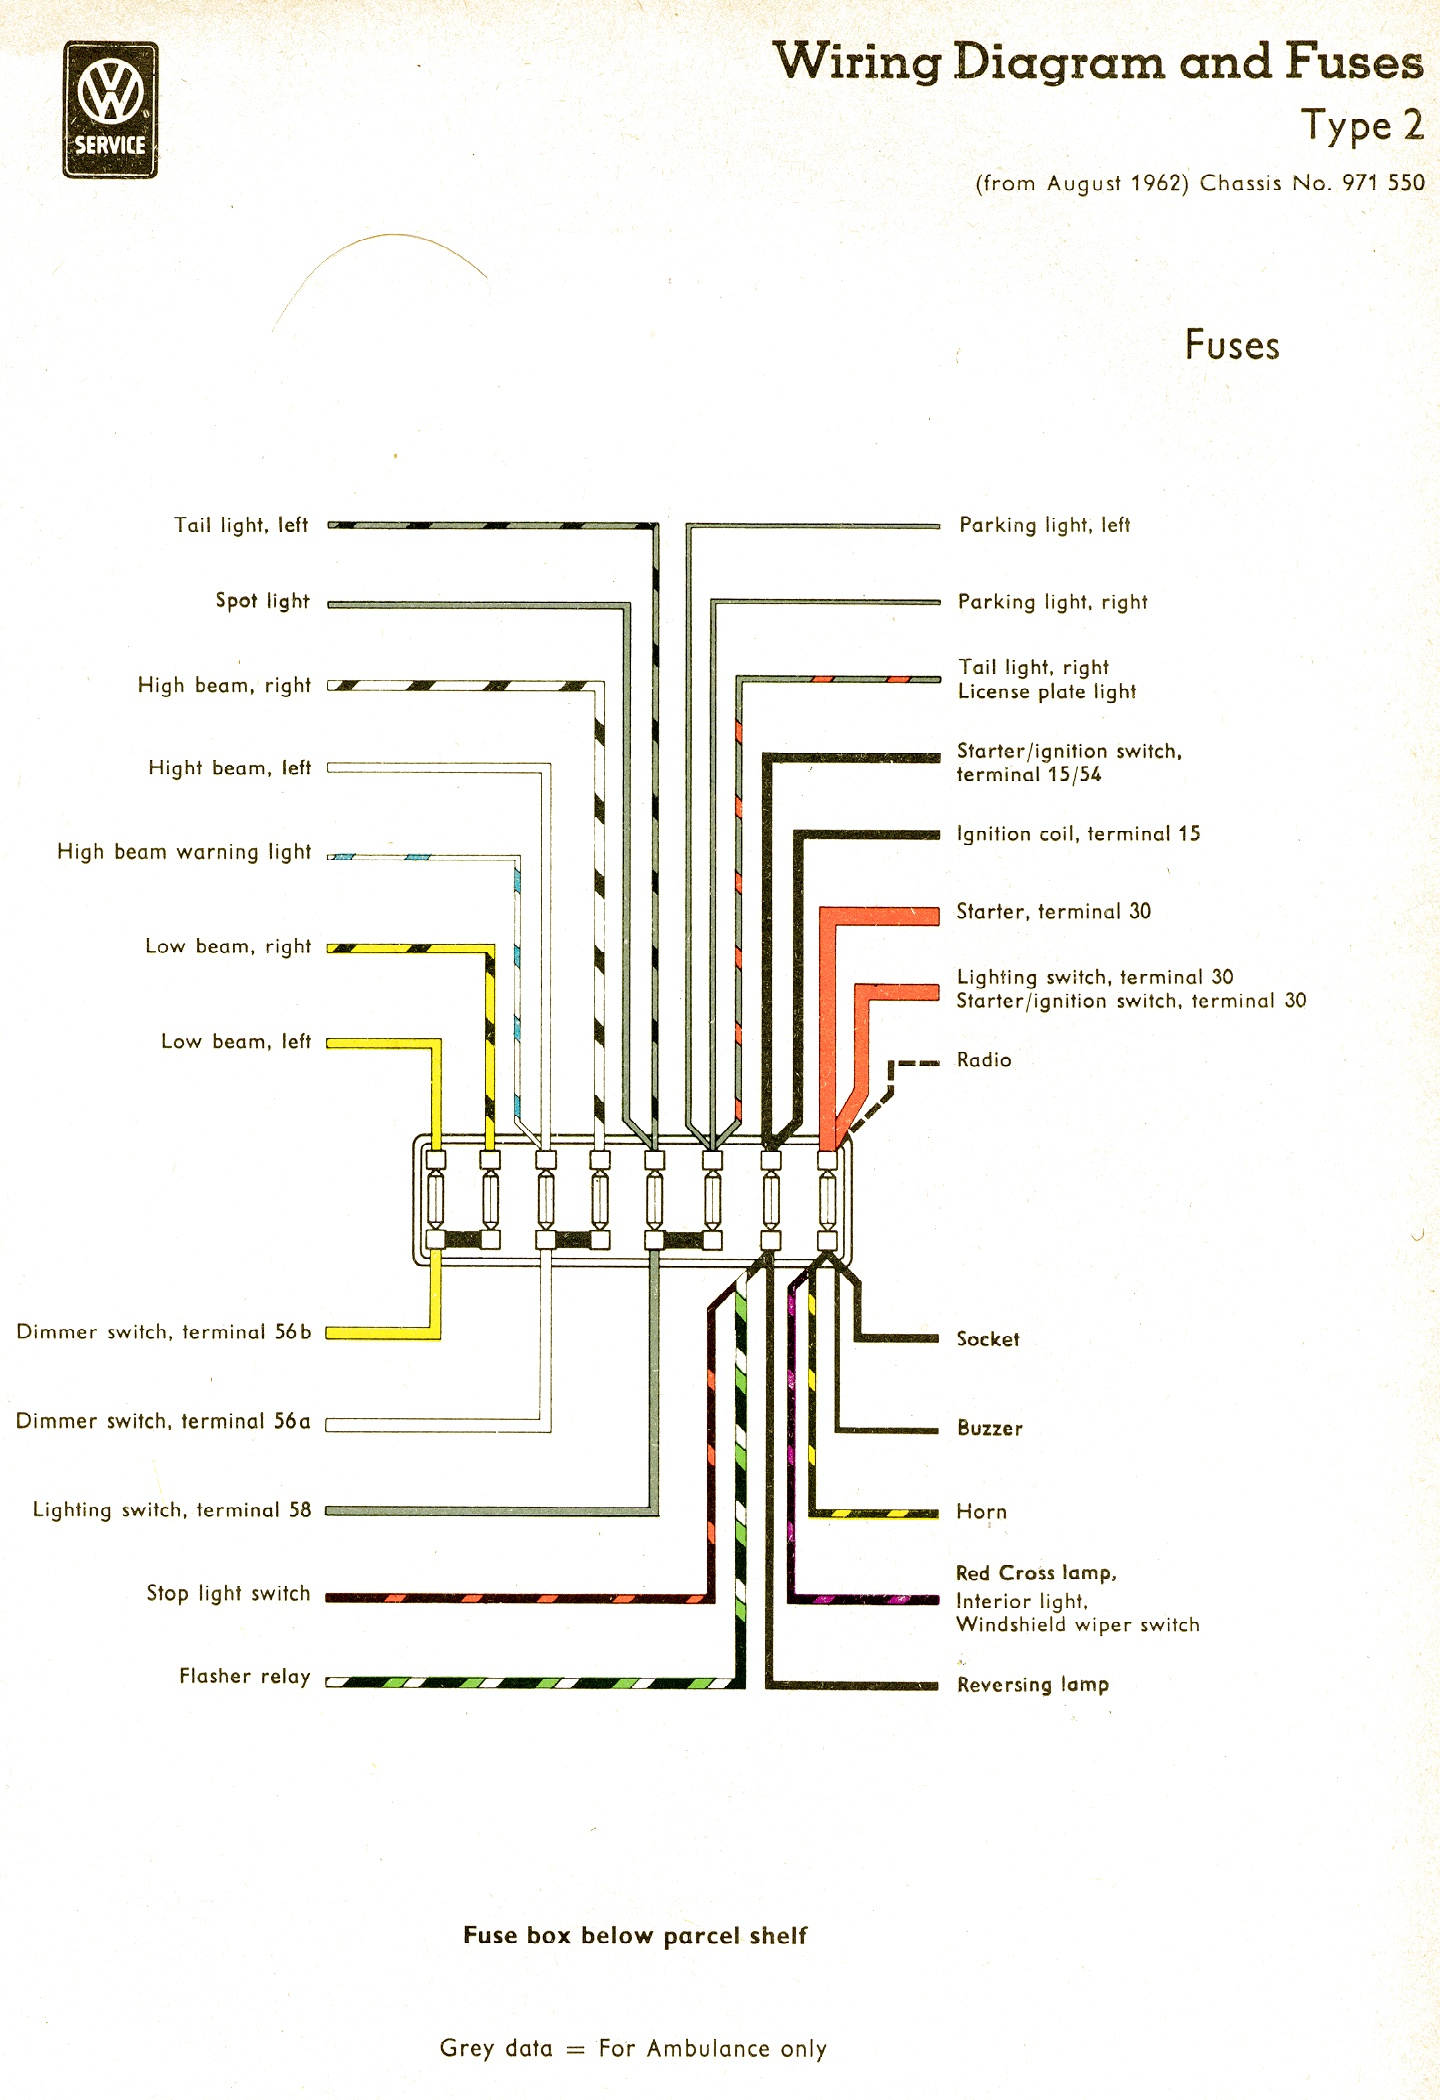 bus 62 fuse vw wiring diagrams 1972 ford f100 fuse box diagram at soozxer.org